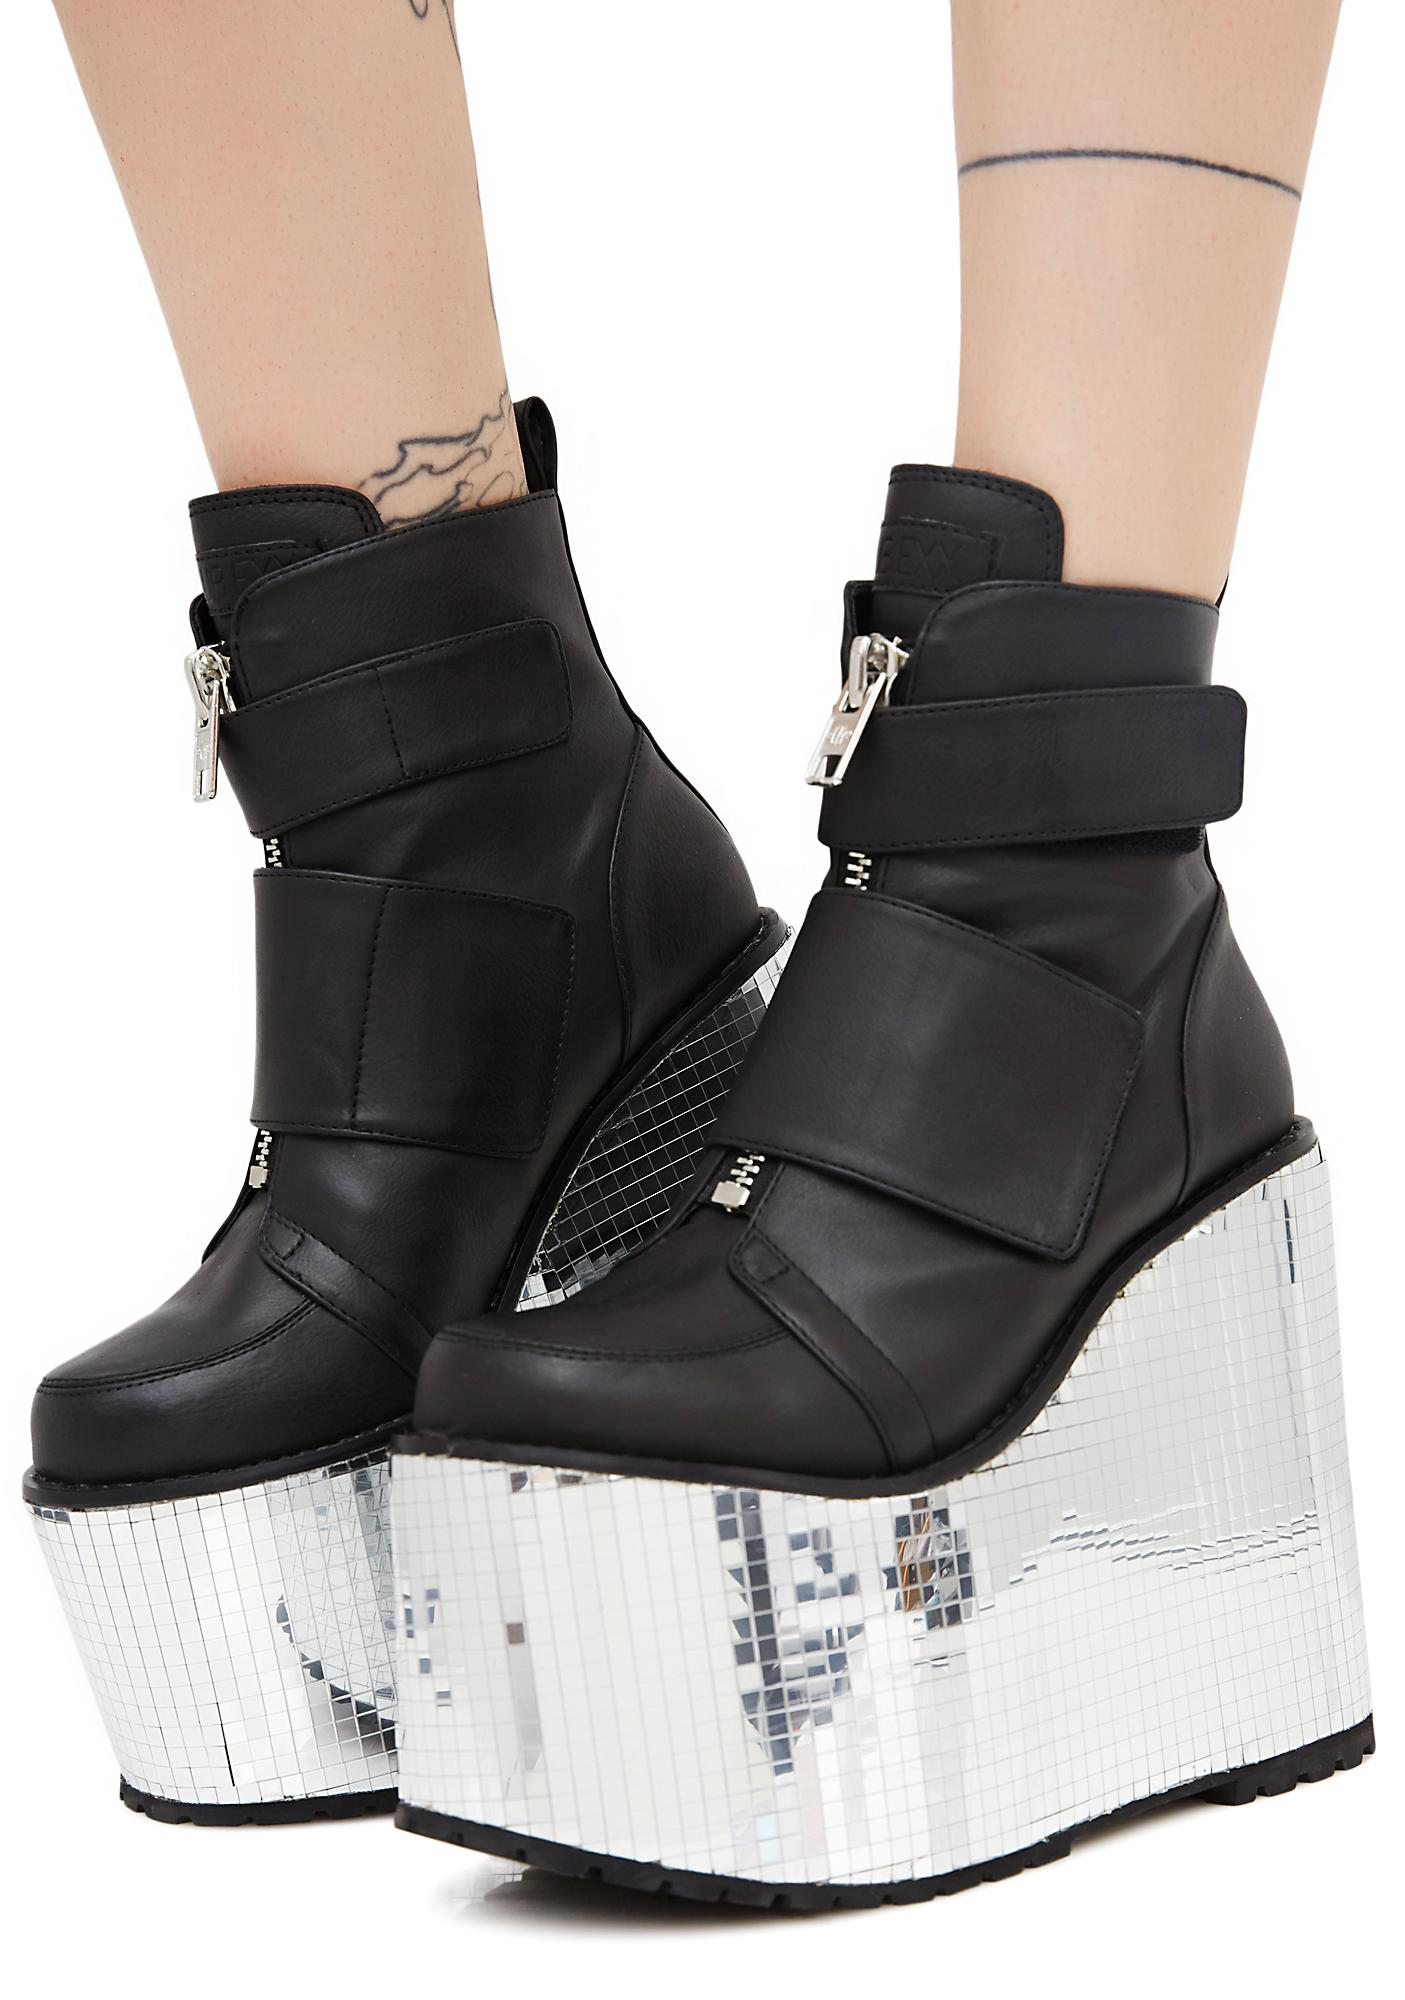 7c68c83c0a Club Exx Diabolical Disco Platform Wedges